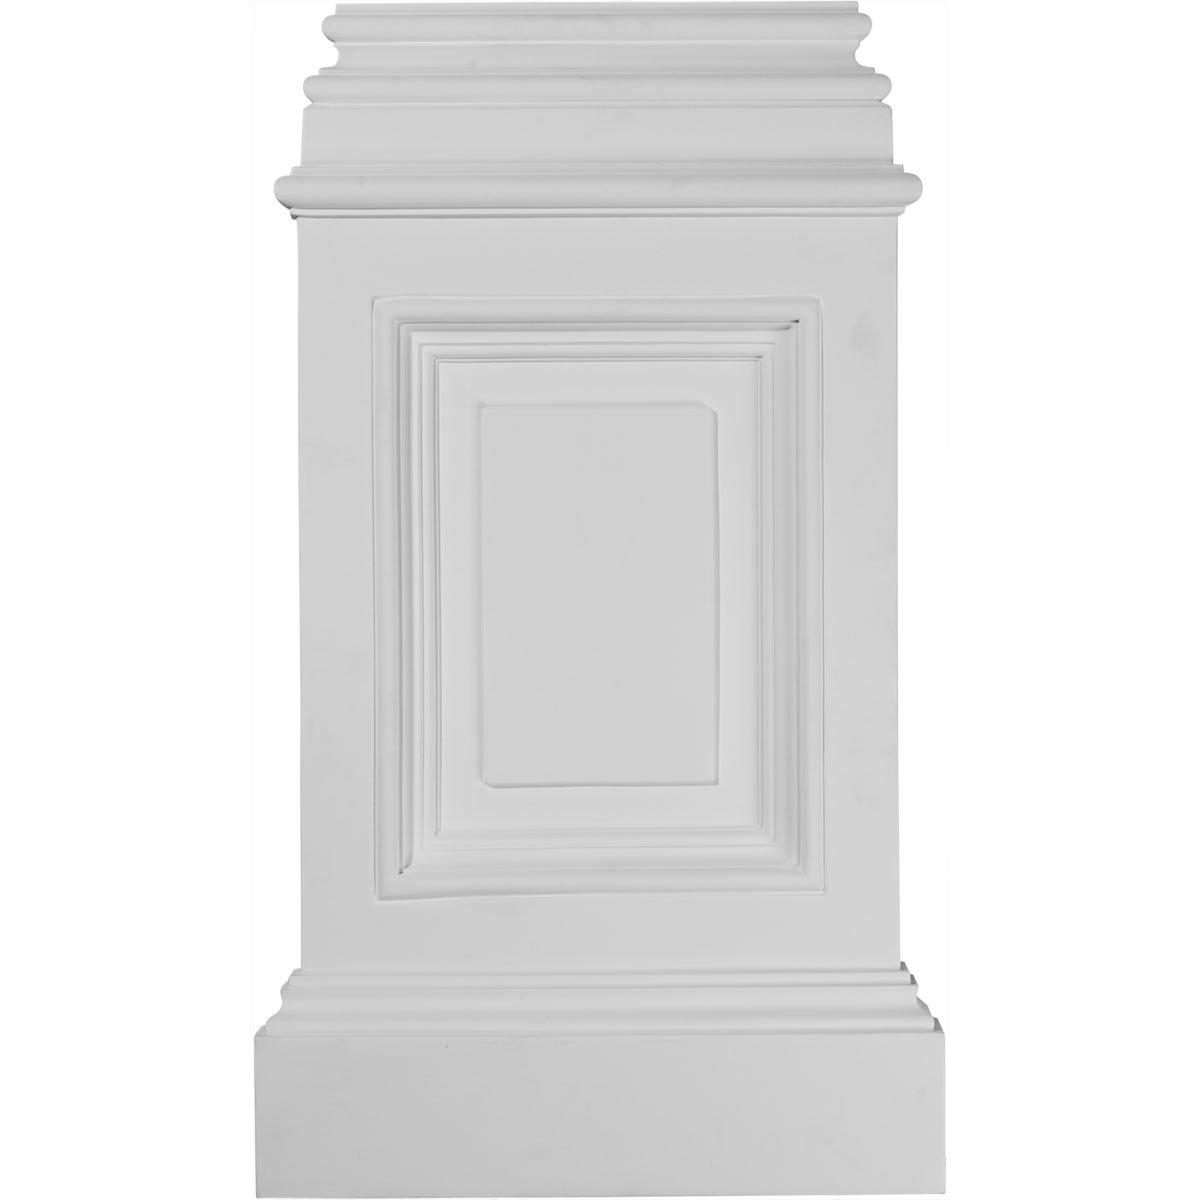 Ekena millwork classic pedestal base from for Urethane millwork